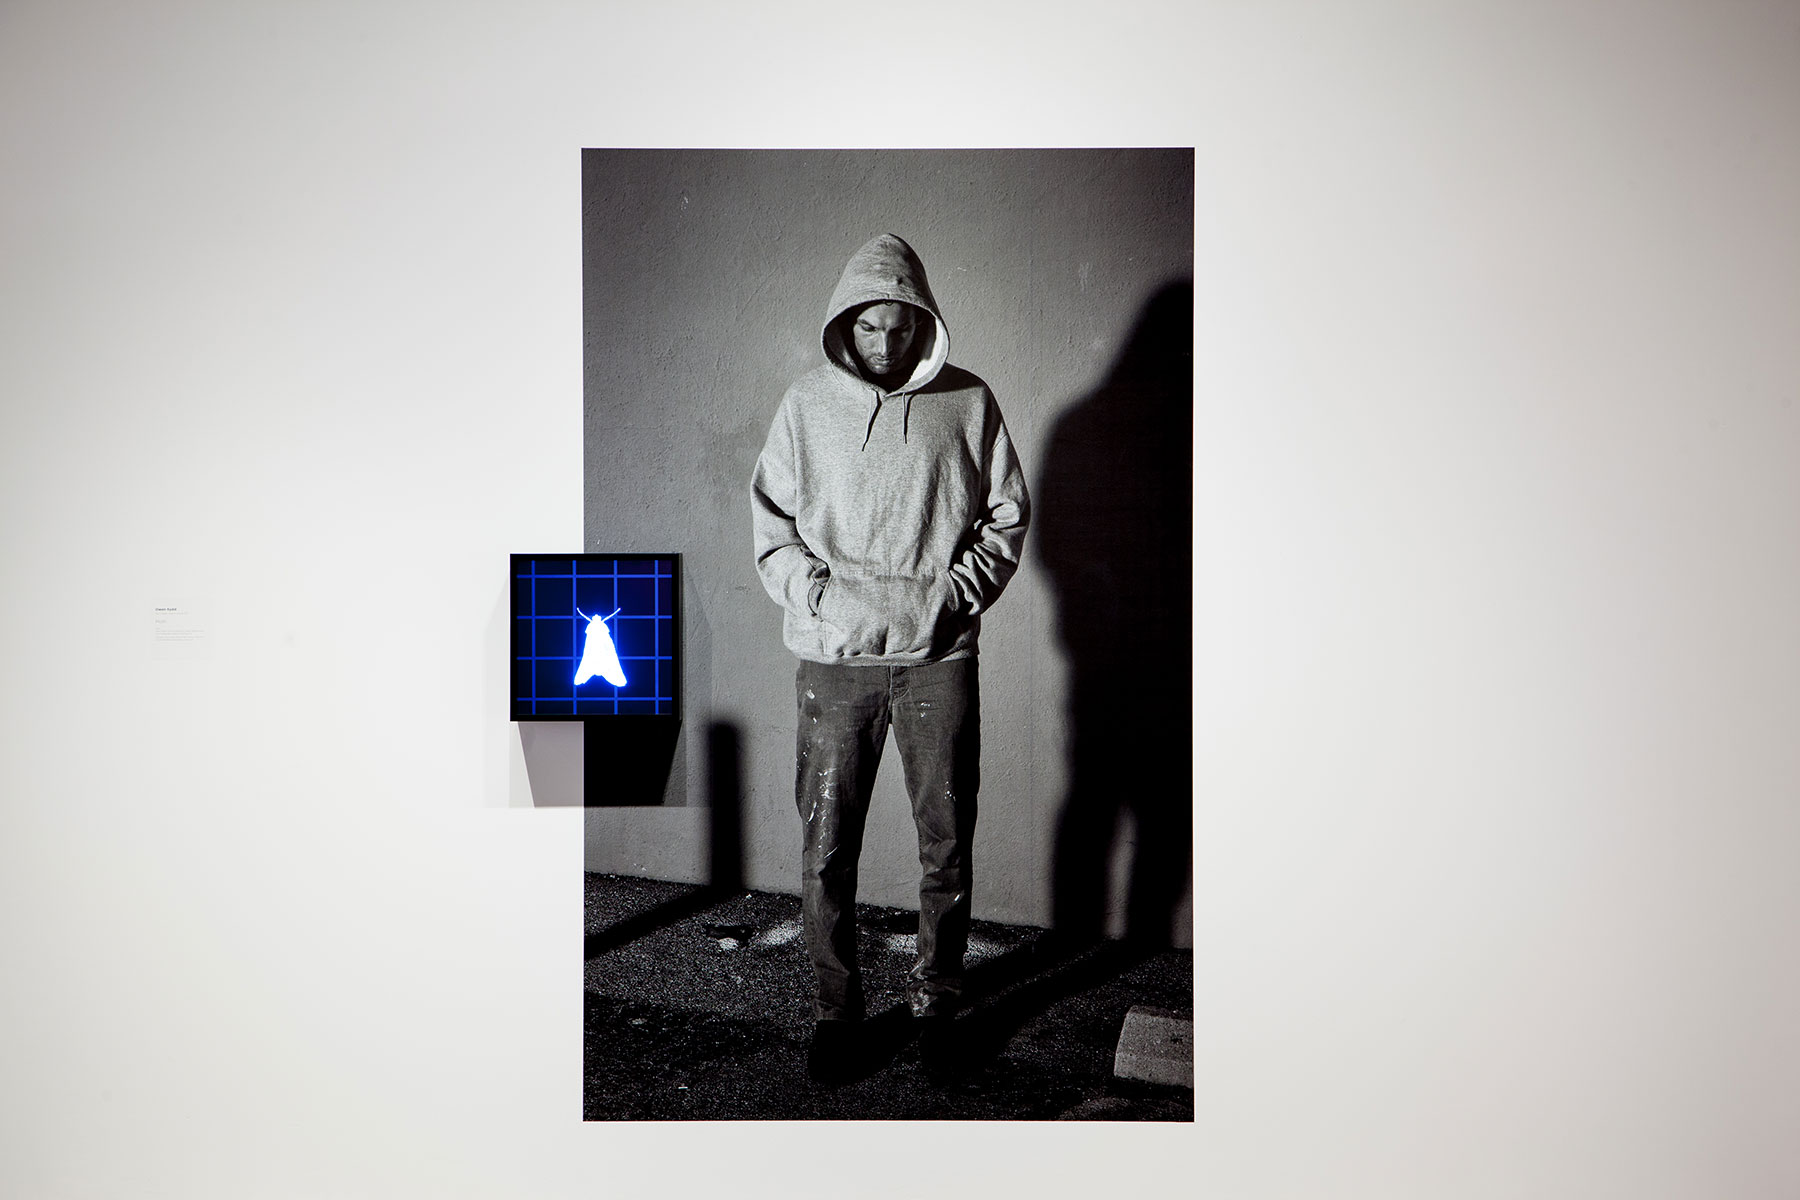 Owen Kydd: Moth (2015). Video (silent, colour, looped) on square digital monitor with media player, adhesive digital print. All images courtesy the artist, Monte Clark Gallery, Vancouver and Nicelle Beauchene Gallery, New York.